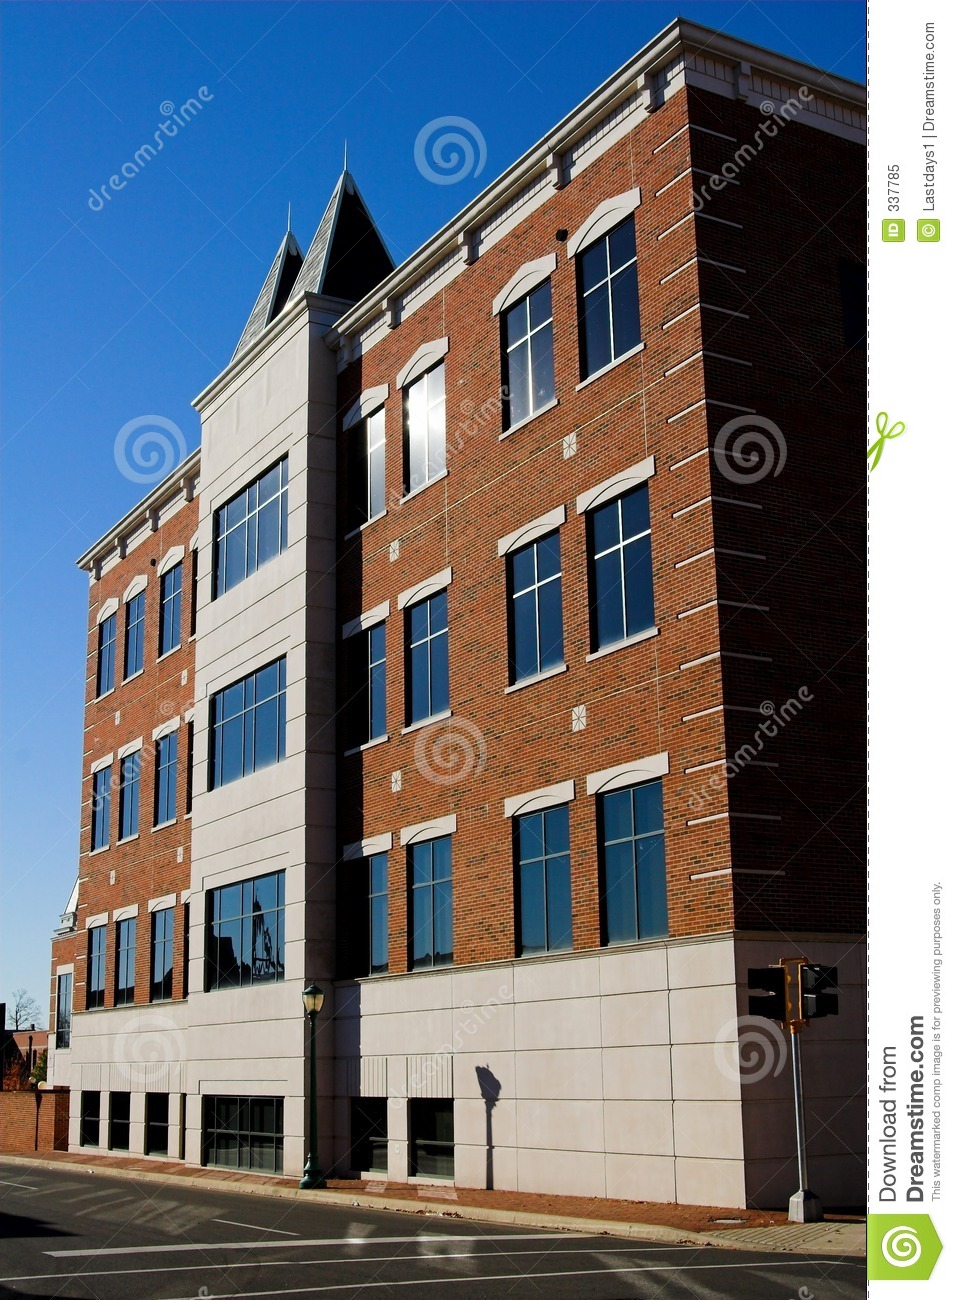 Architecture 101 royalty free stock photo image 337785 for Architecture 101